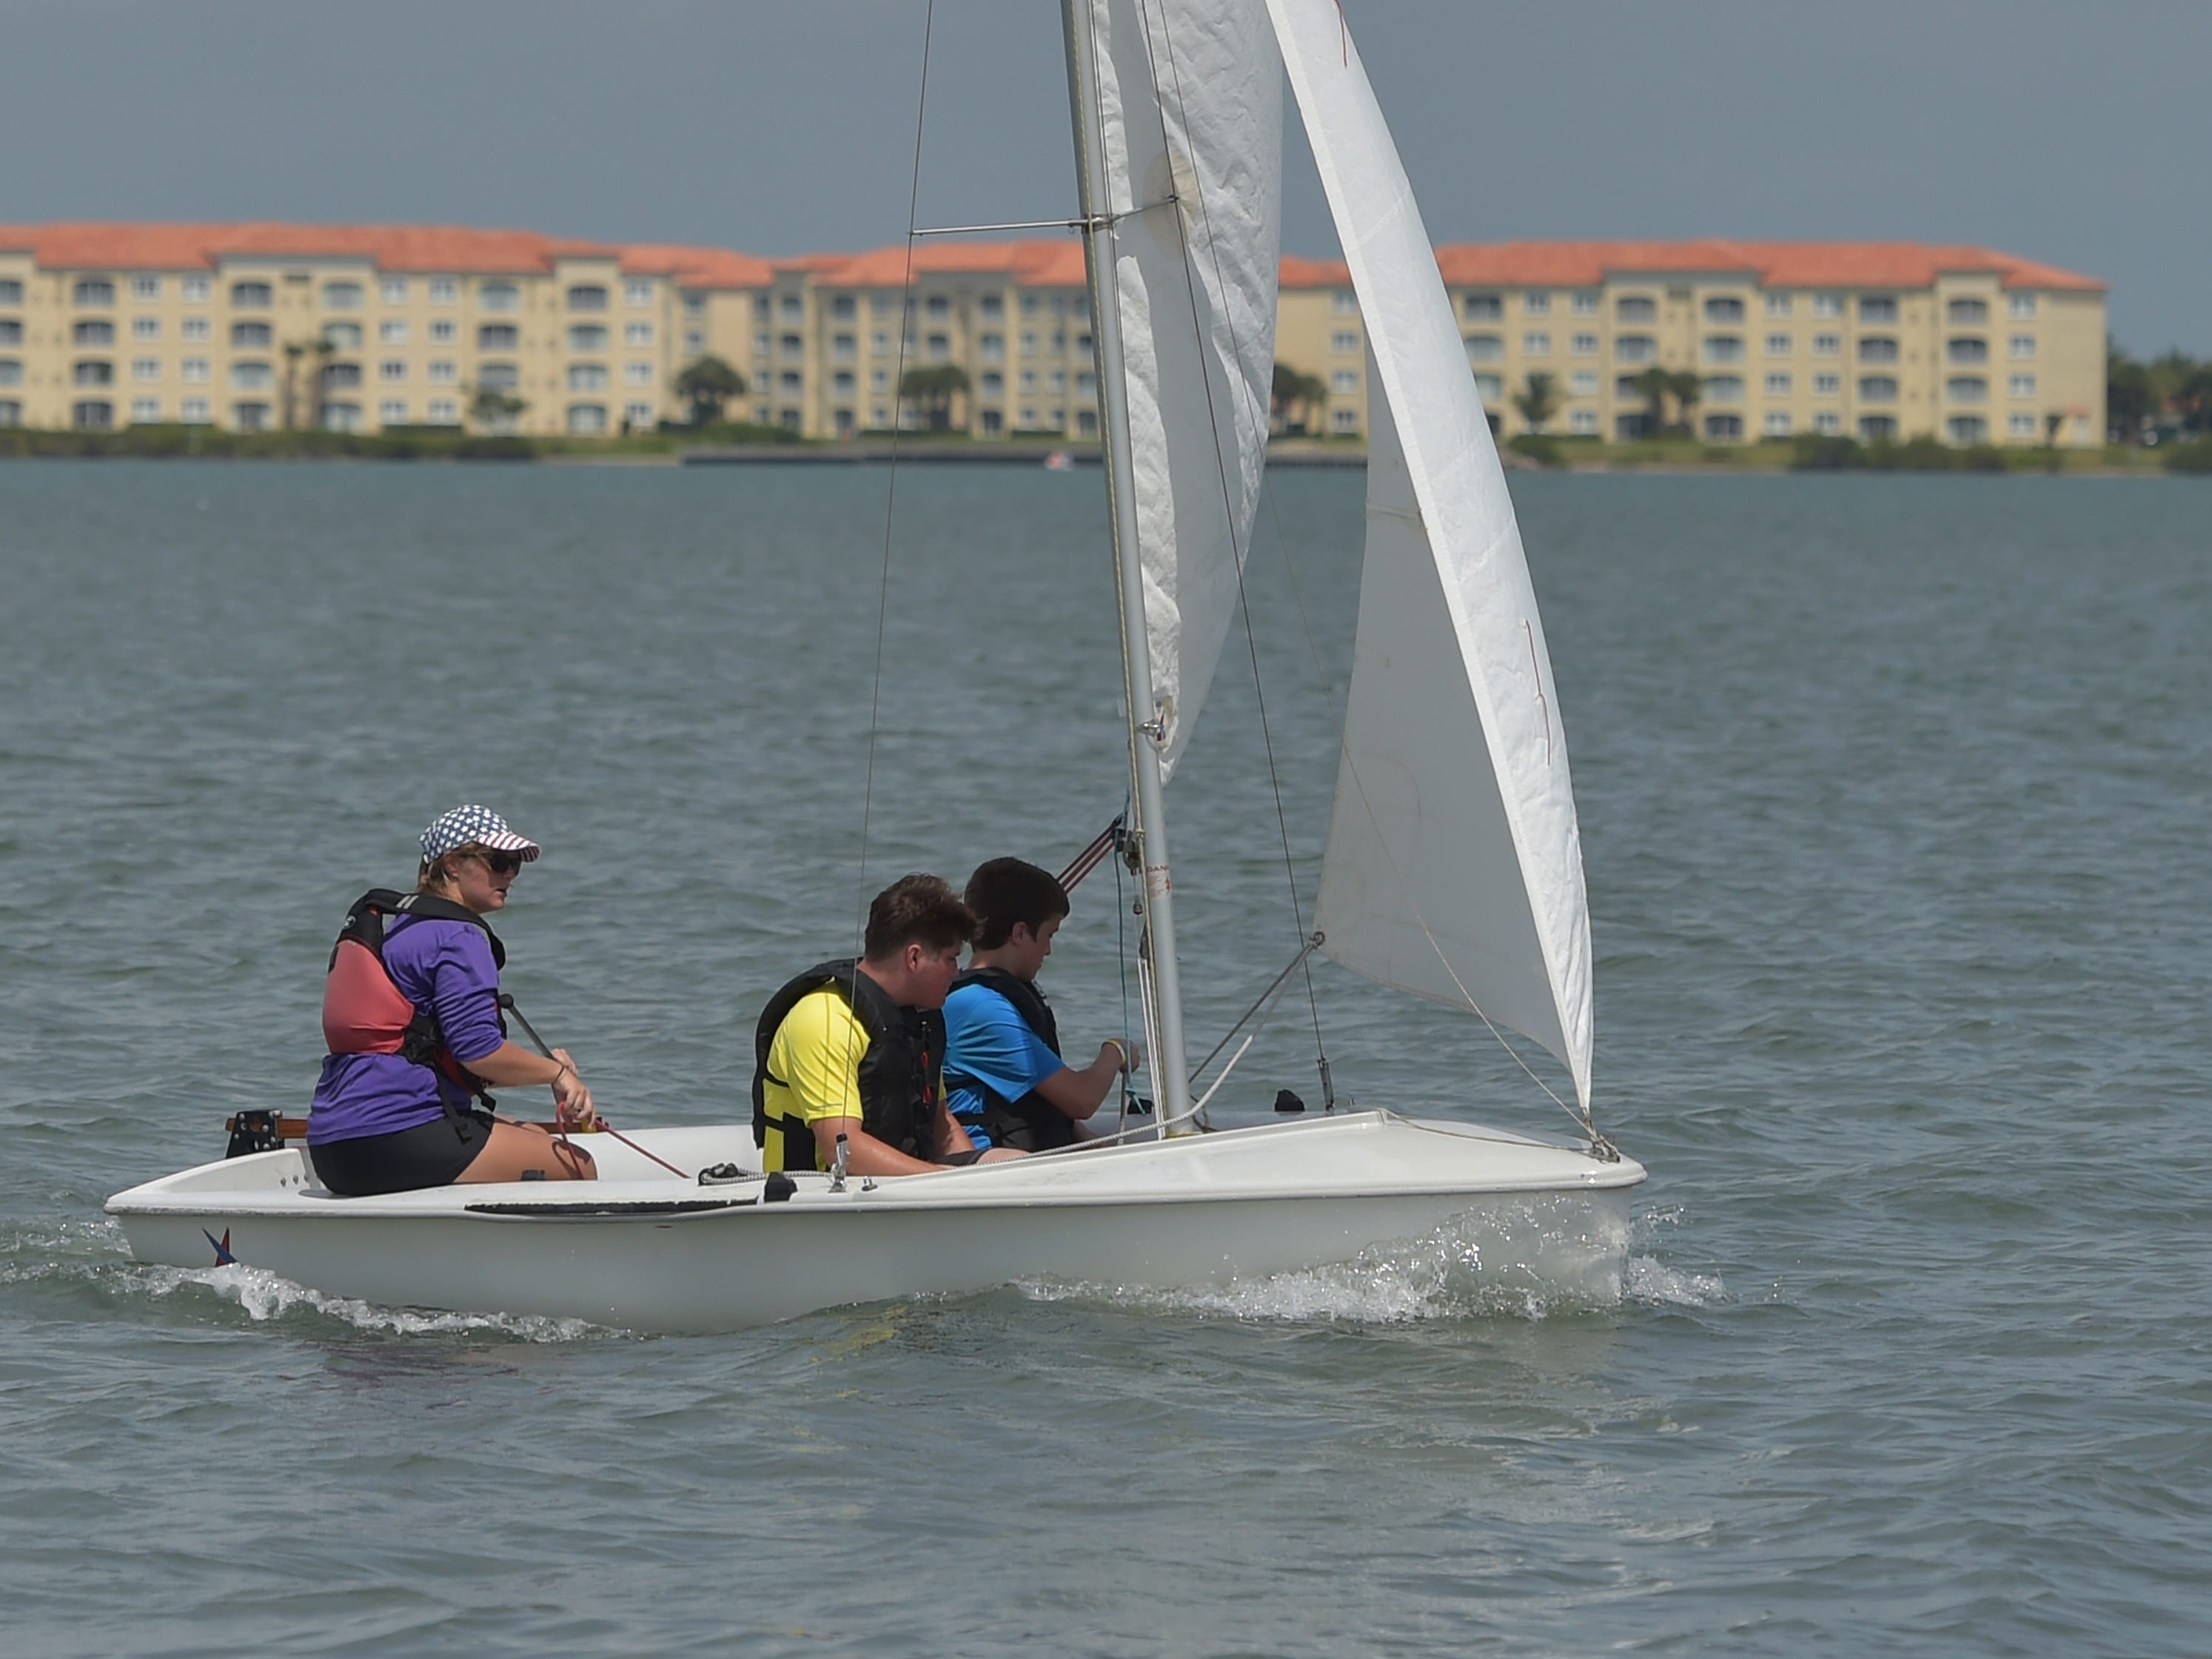 Families having fun at the annual Waterfest event on Sunday, May 5, 2019, at Jaycee Park in Fort Pierce. The event introduces the experience of being on the water with sailing, kayaking, canoeing, paddle boarding, and other water activities in the Indian River Lagoon for free.